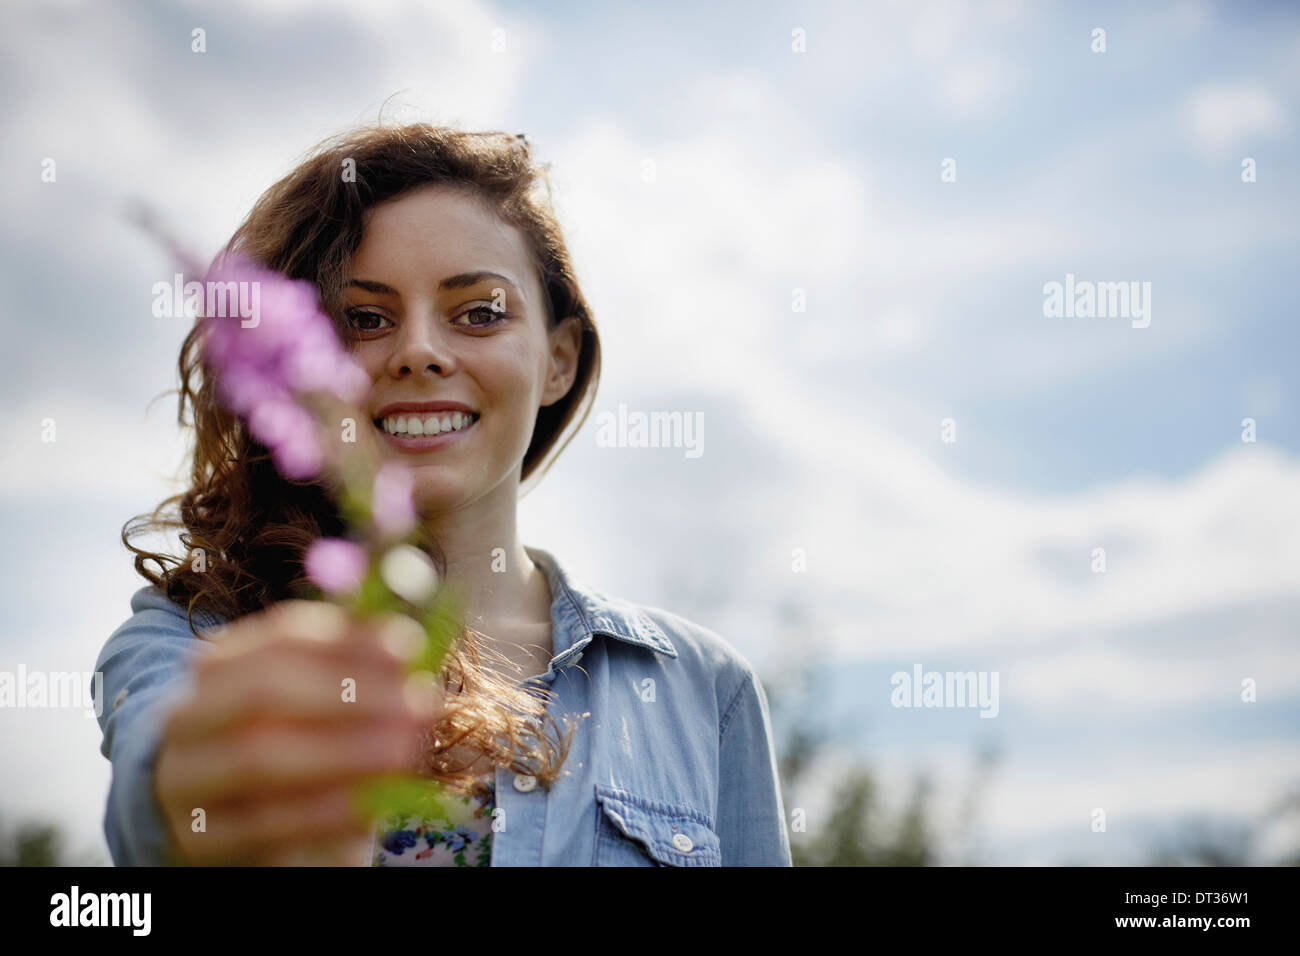 A young woman holding out a wild flower with pink petals - Stock Image